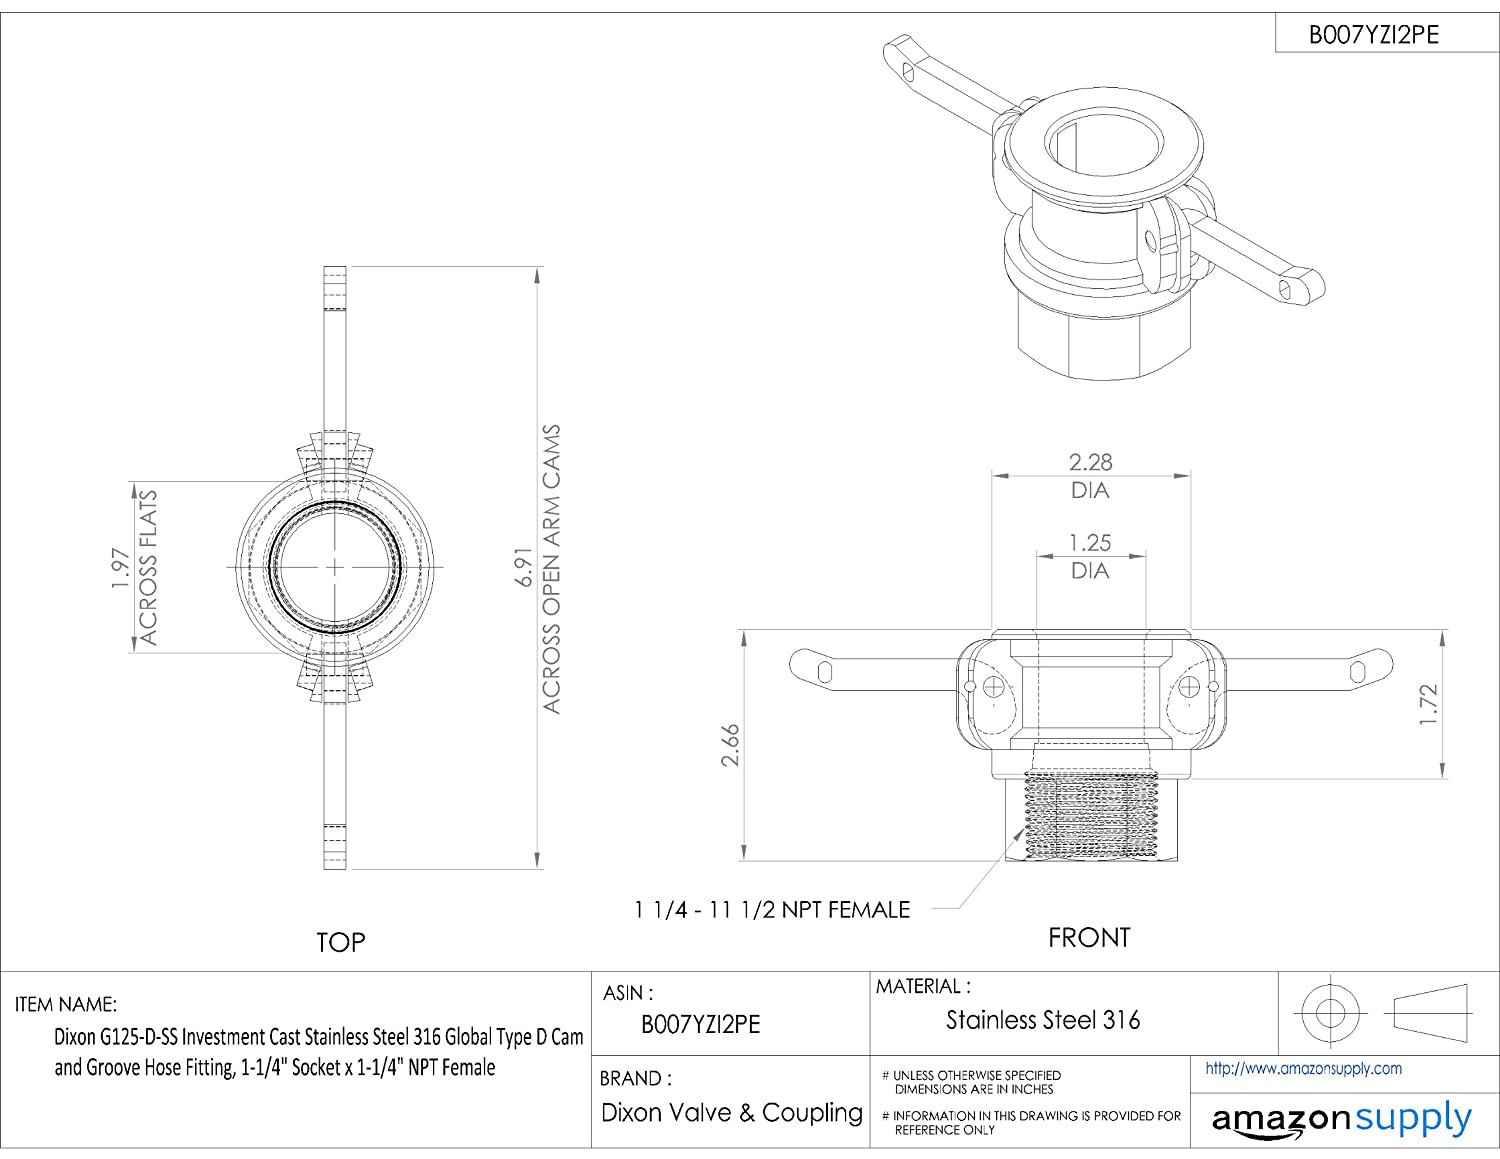 Dixon G250-D-SS Investment Cast Stainless Steel 316 Global Type D Cam and Groove Hose Fitting 2-1//2 Socket x 2-1//2 NPT Female